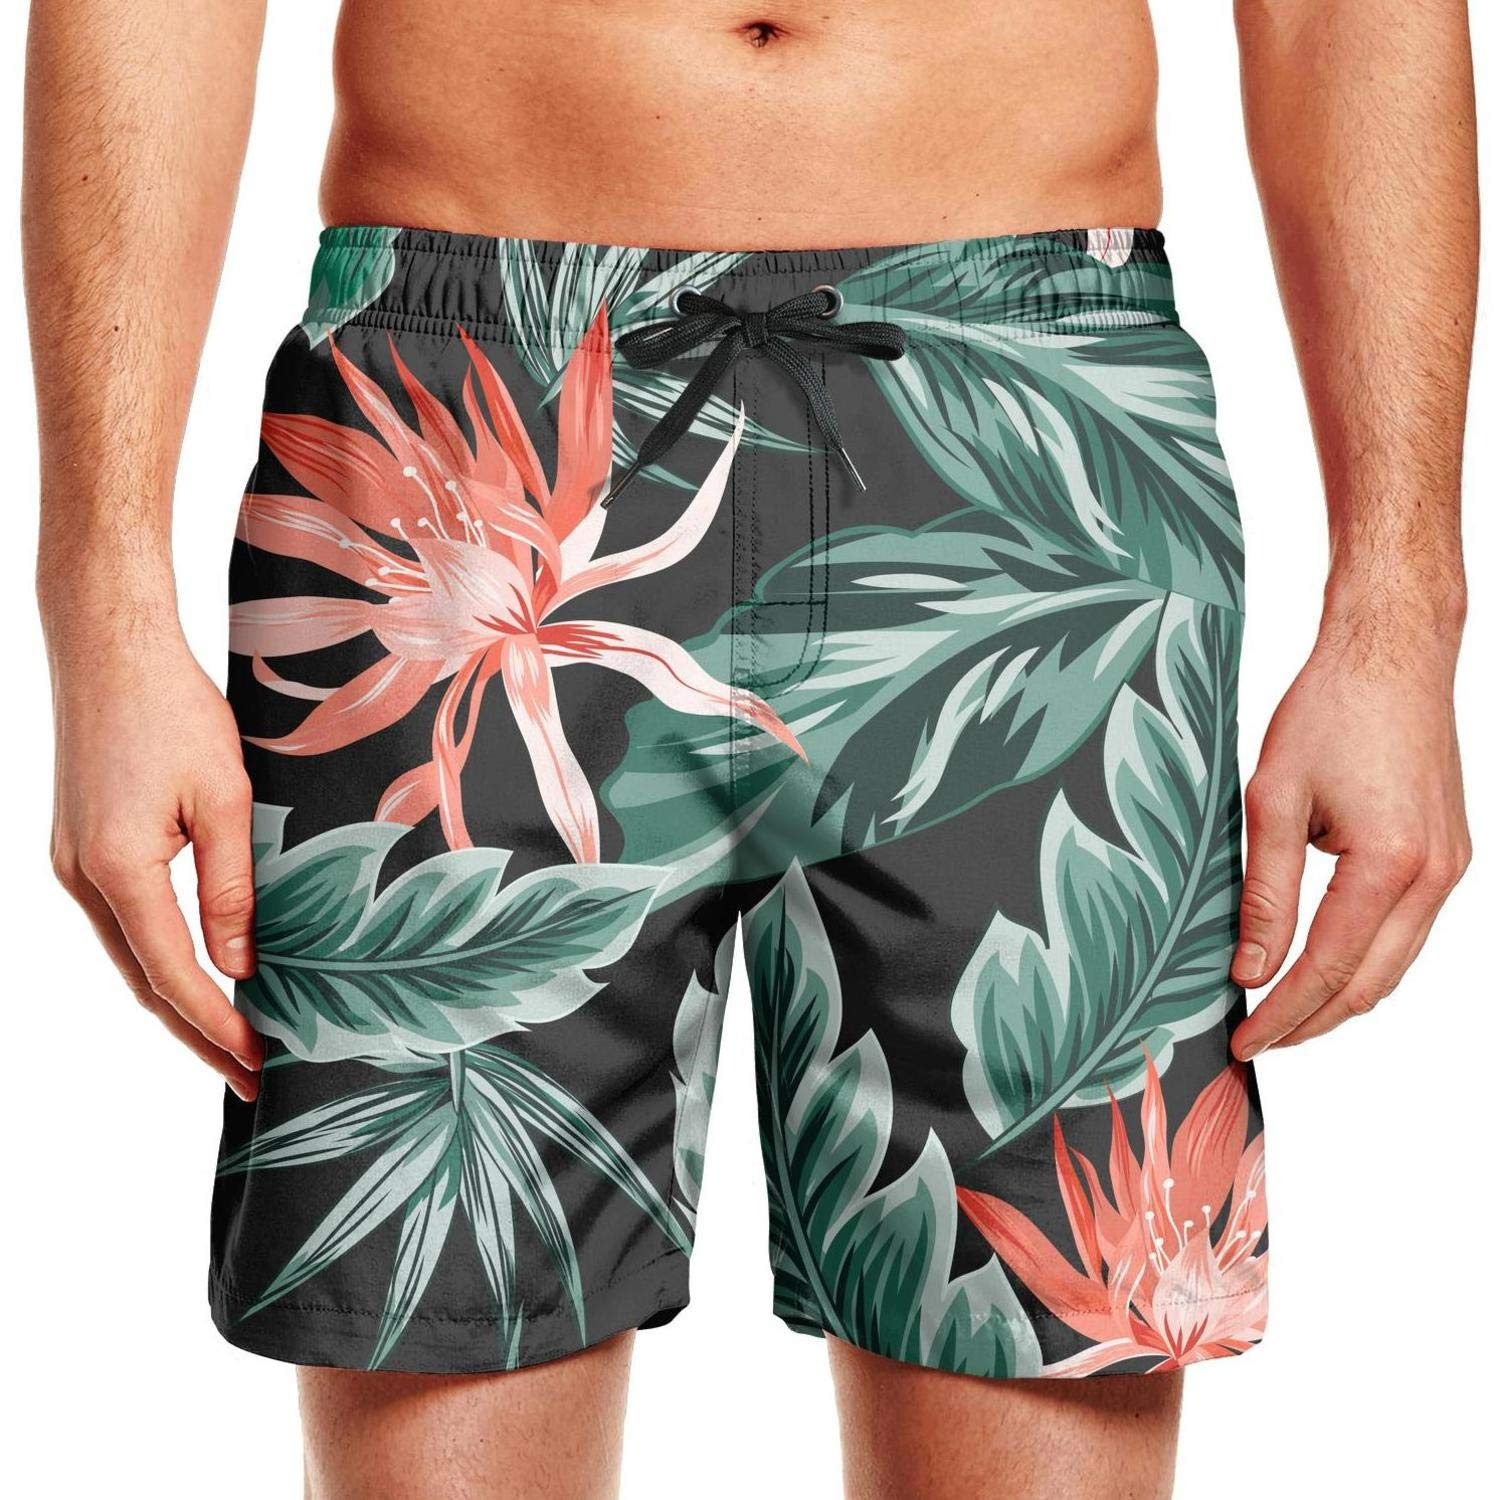 Mens Tropical Floral Hawaii Trees Foliage Swim Trunks Quick Dry Beach Shorts Assorted Board Shorts